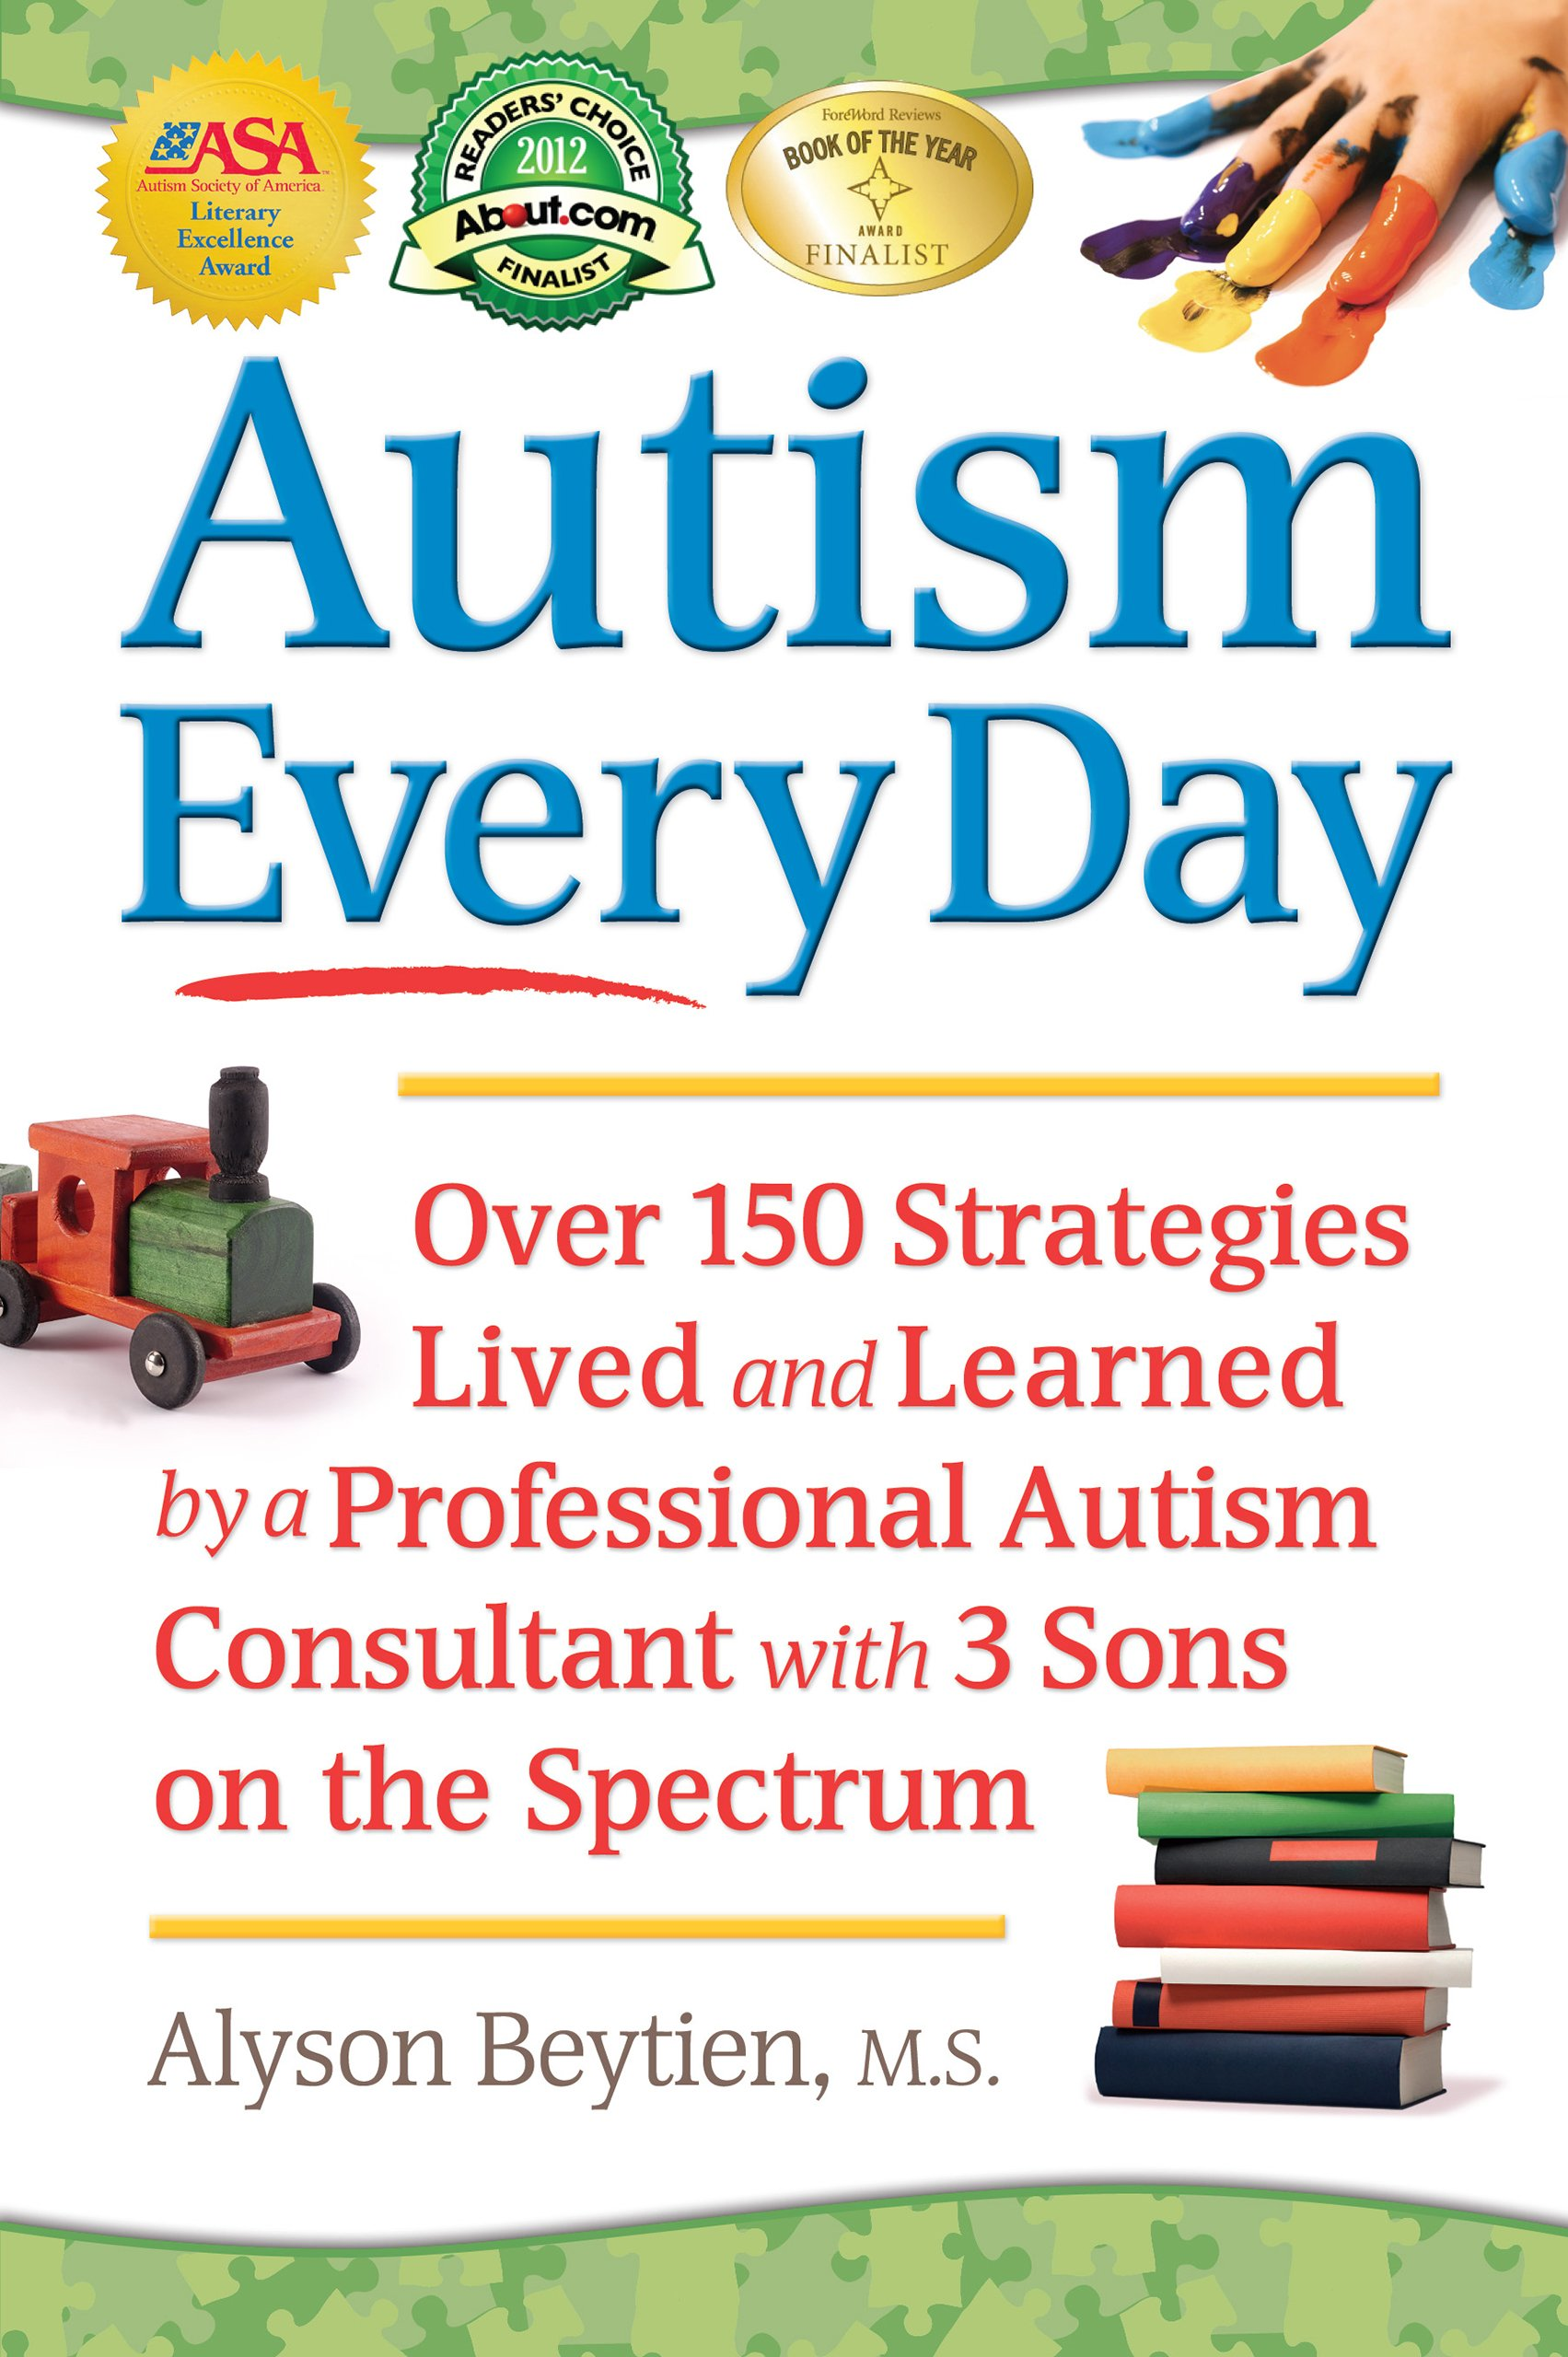 Autism Every Day Over 150 Strategies Lived and Learned by a